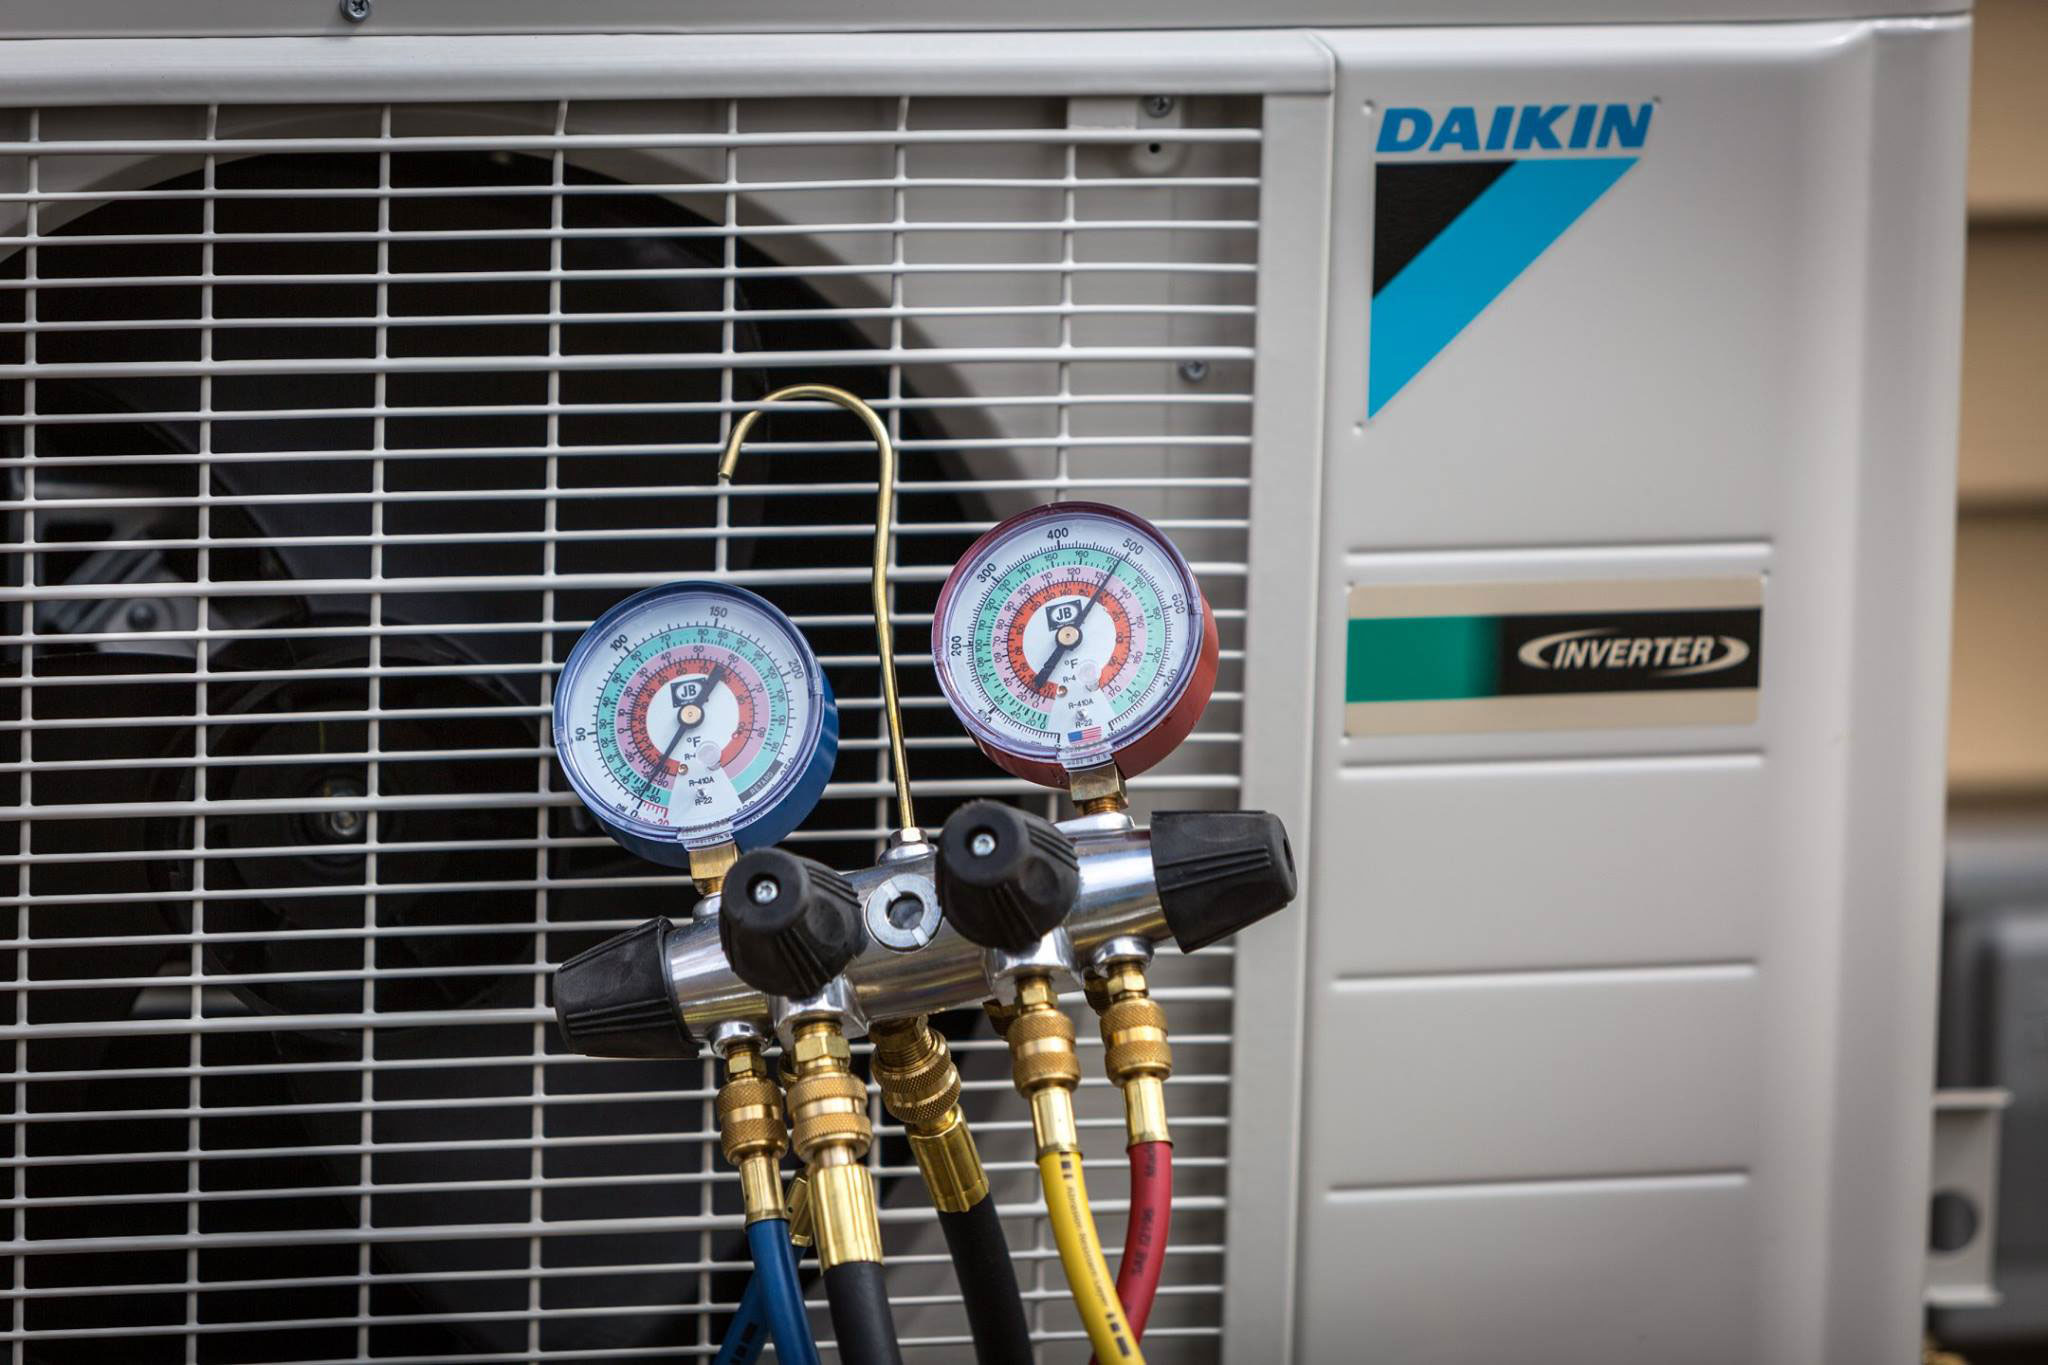 Daikin Heat Pump Close up